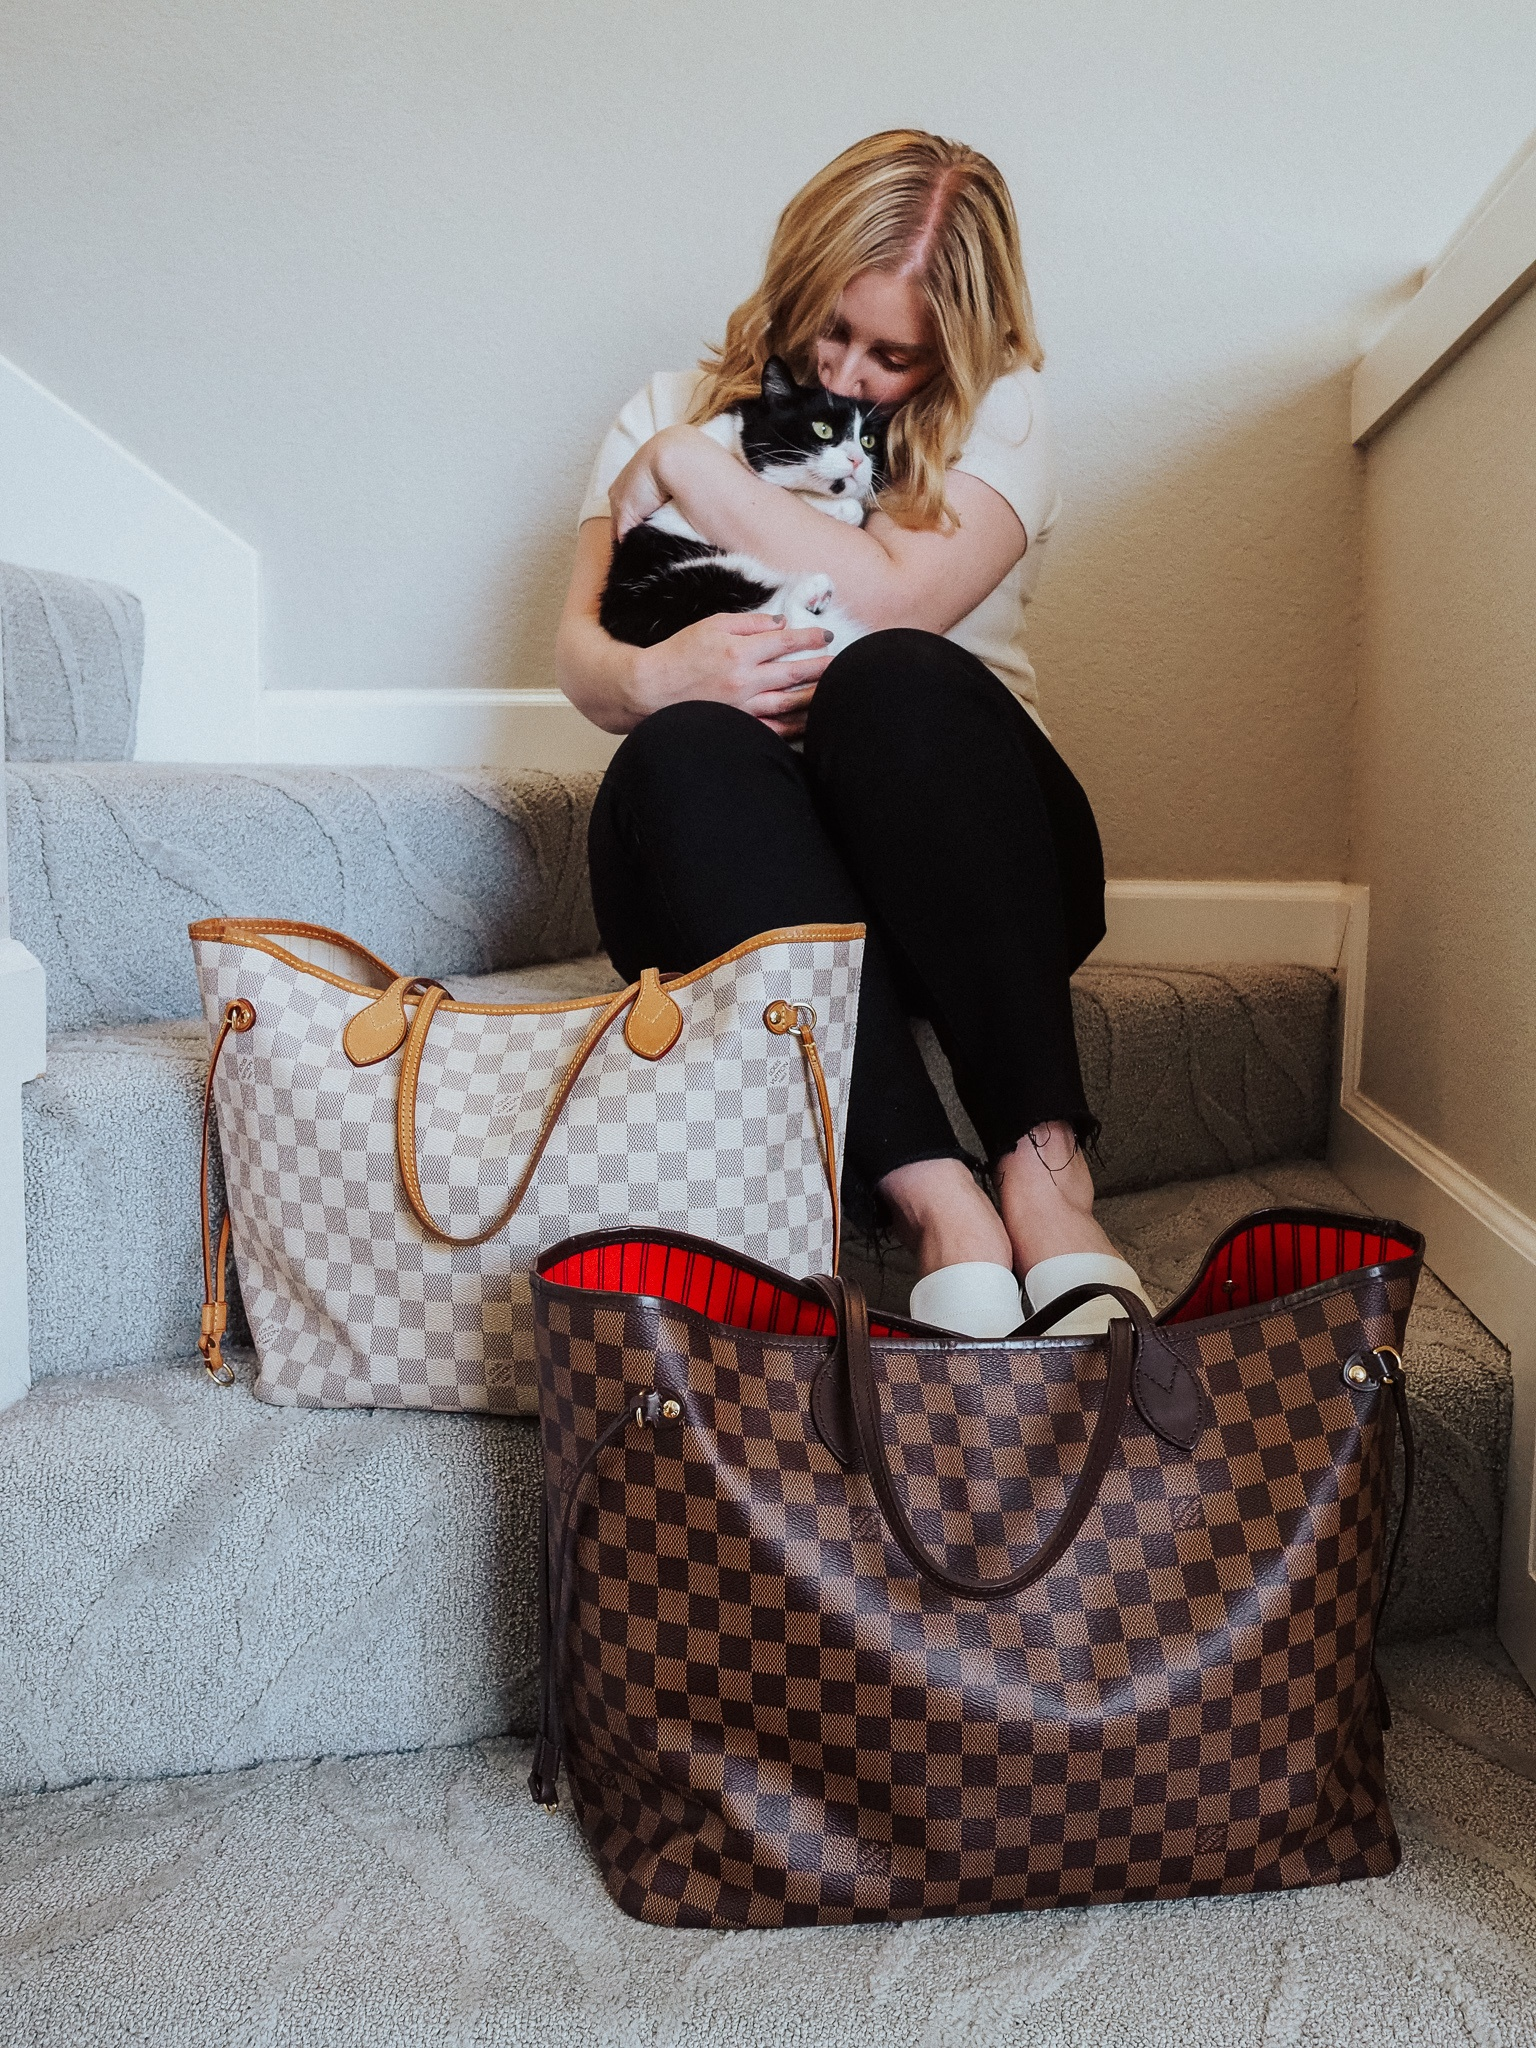 Snag the best Louis Vuitton dupes to save on your favorite handbag styles. Kelsey from Blondes & Bagels shares her favorites.